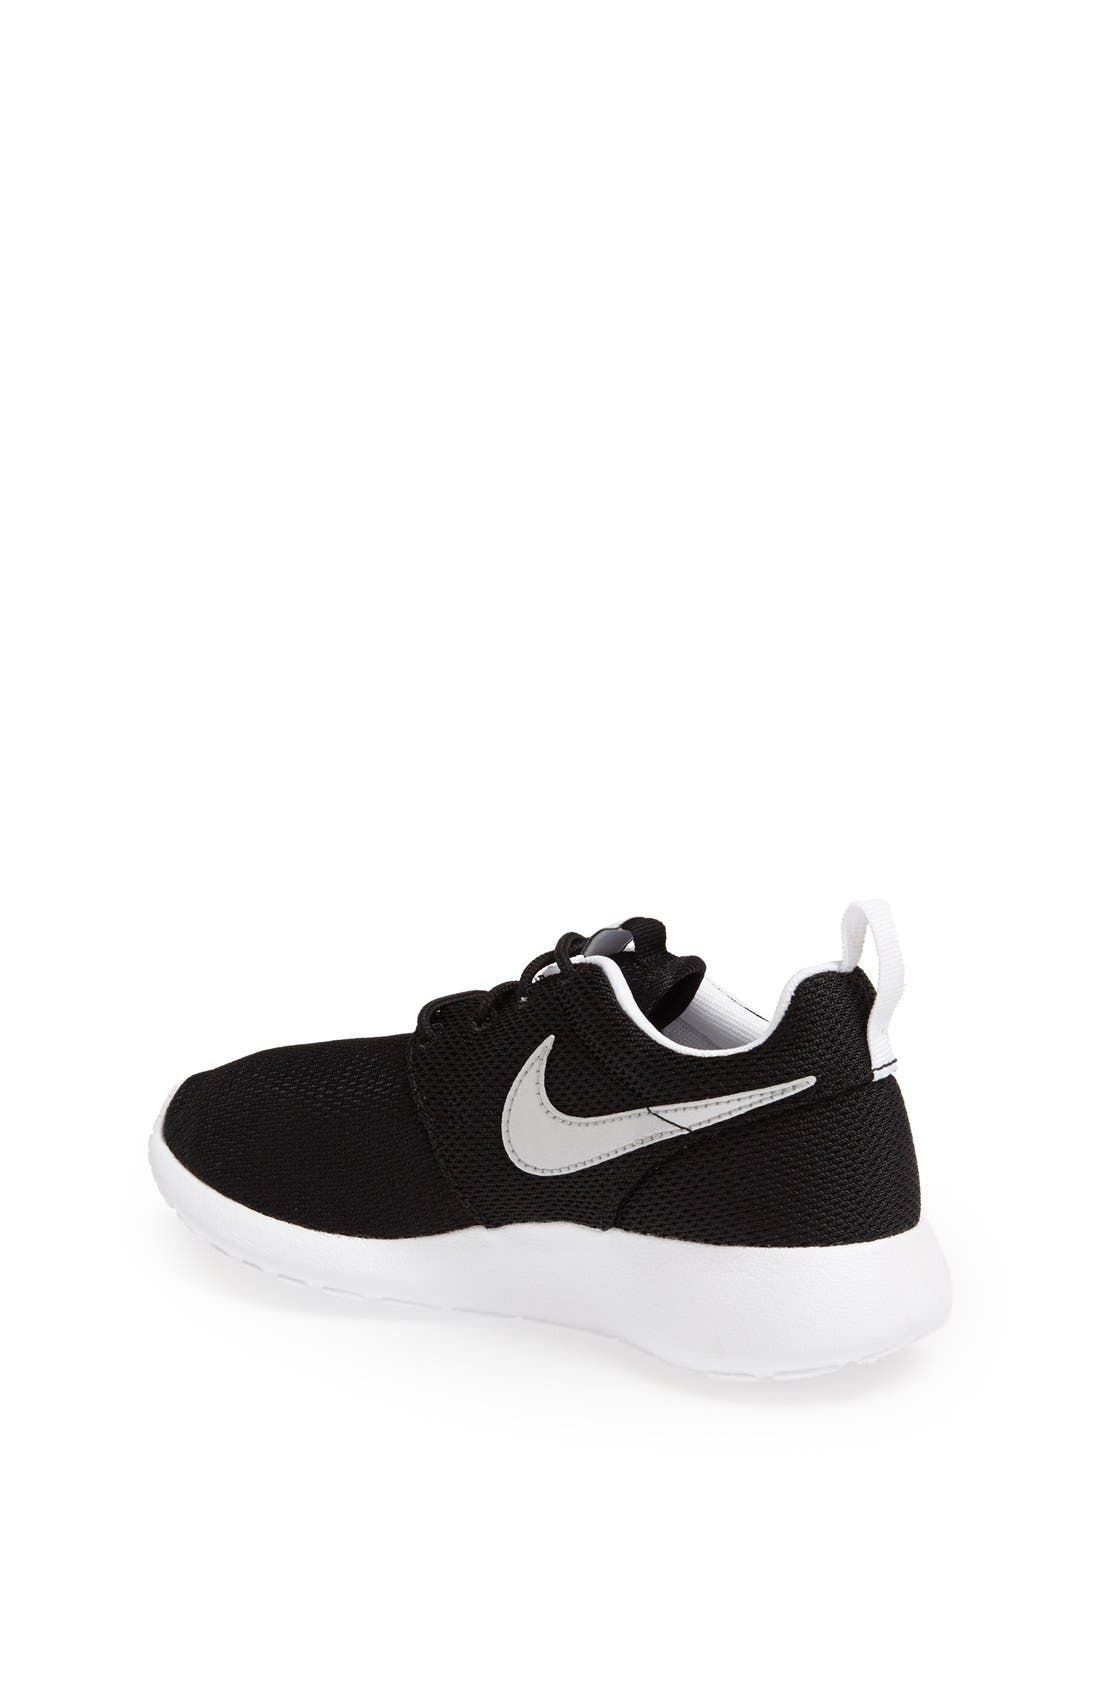 'Roshe Run' Sneaker,                             Alternate thumbnail 67, color,